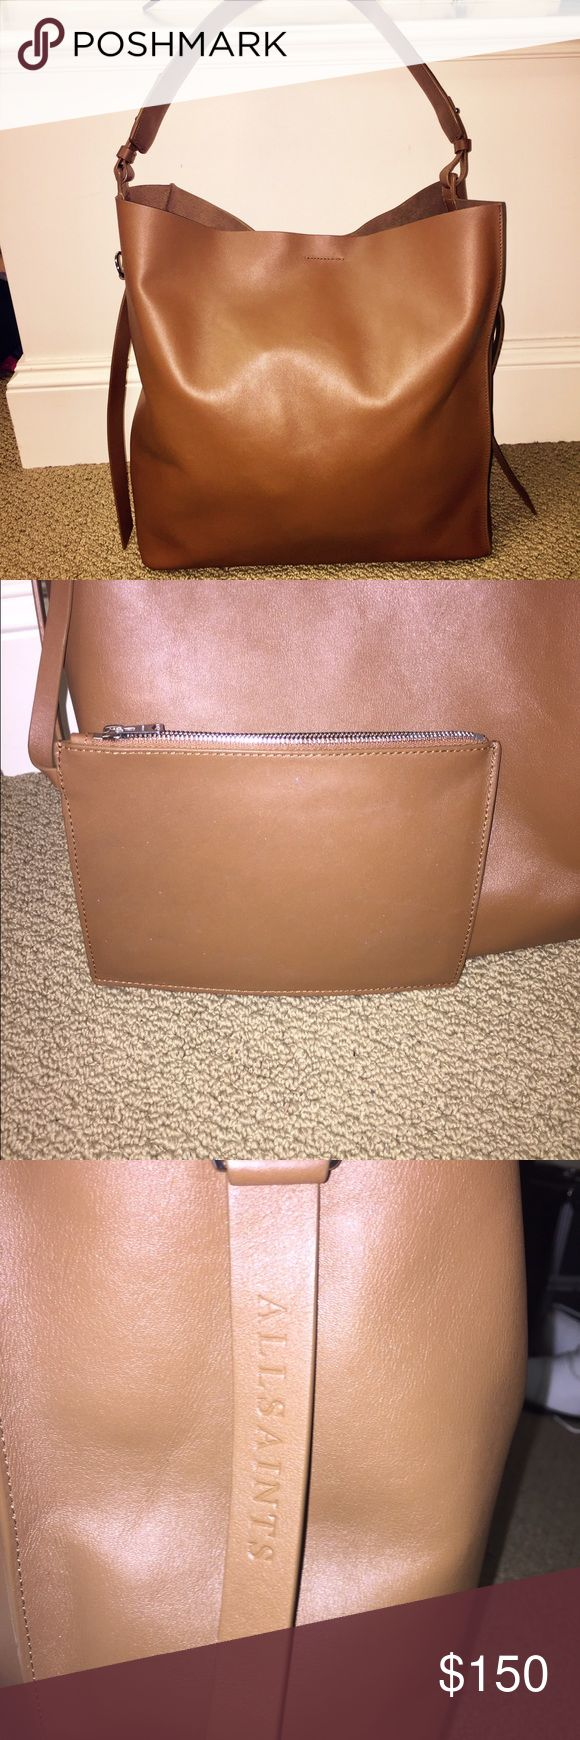 All saints Paradise North South Tote. Slouchy yet sleek, the Paradise North South Tote is a classic shape crafted from butter-soft lamb leather. Featuring a roomy interior with a handy zip pocket, it transitions from day to night effortlessly. Light caramel color   Single top handle. Magnetic closure. Interior zip pocket. Interior pouch pocket. Long strap extensions with ring detail. Structured base with 4 protective feet. Super-soft leather. Unlined. All Saints Bags Totes